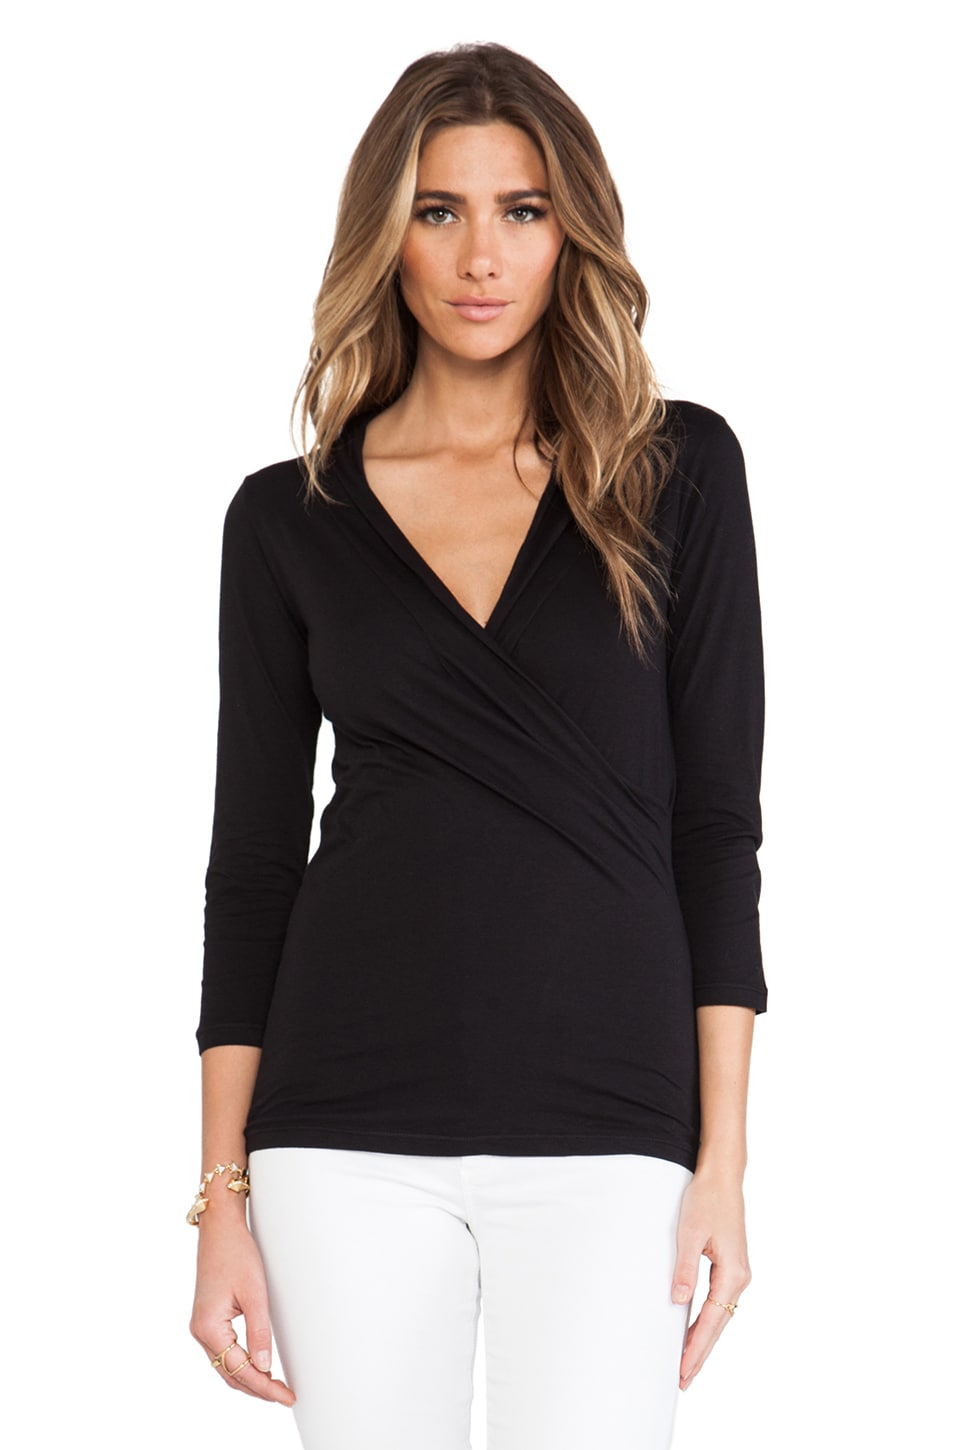 Velvet by Graham & Spencer Adpra Whisper Classic Top in Black